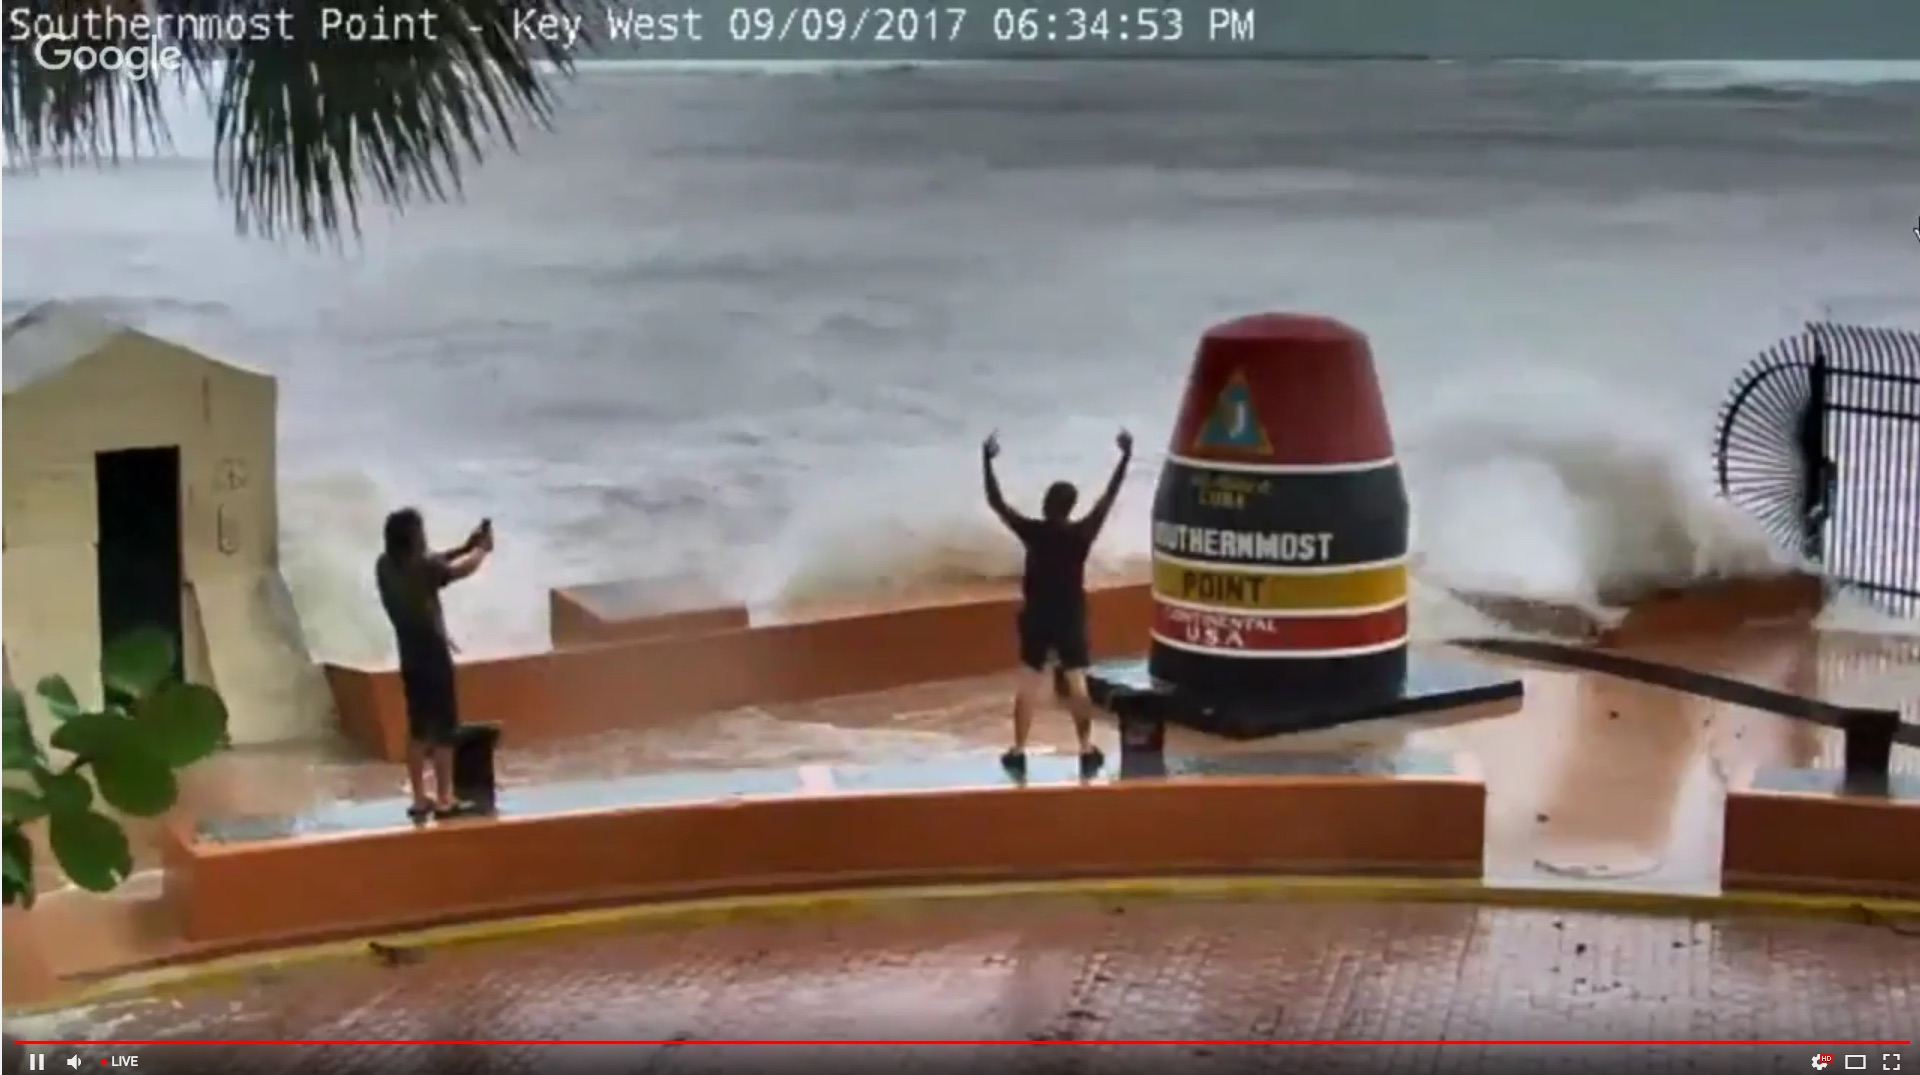 A screenshot from the Southernmost Point webcam on Saturday evening.